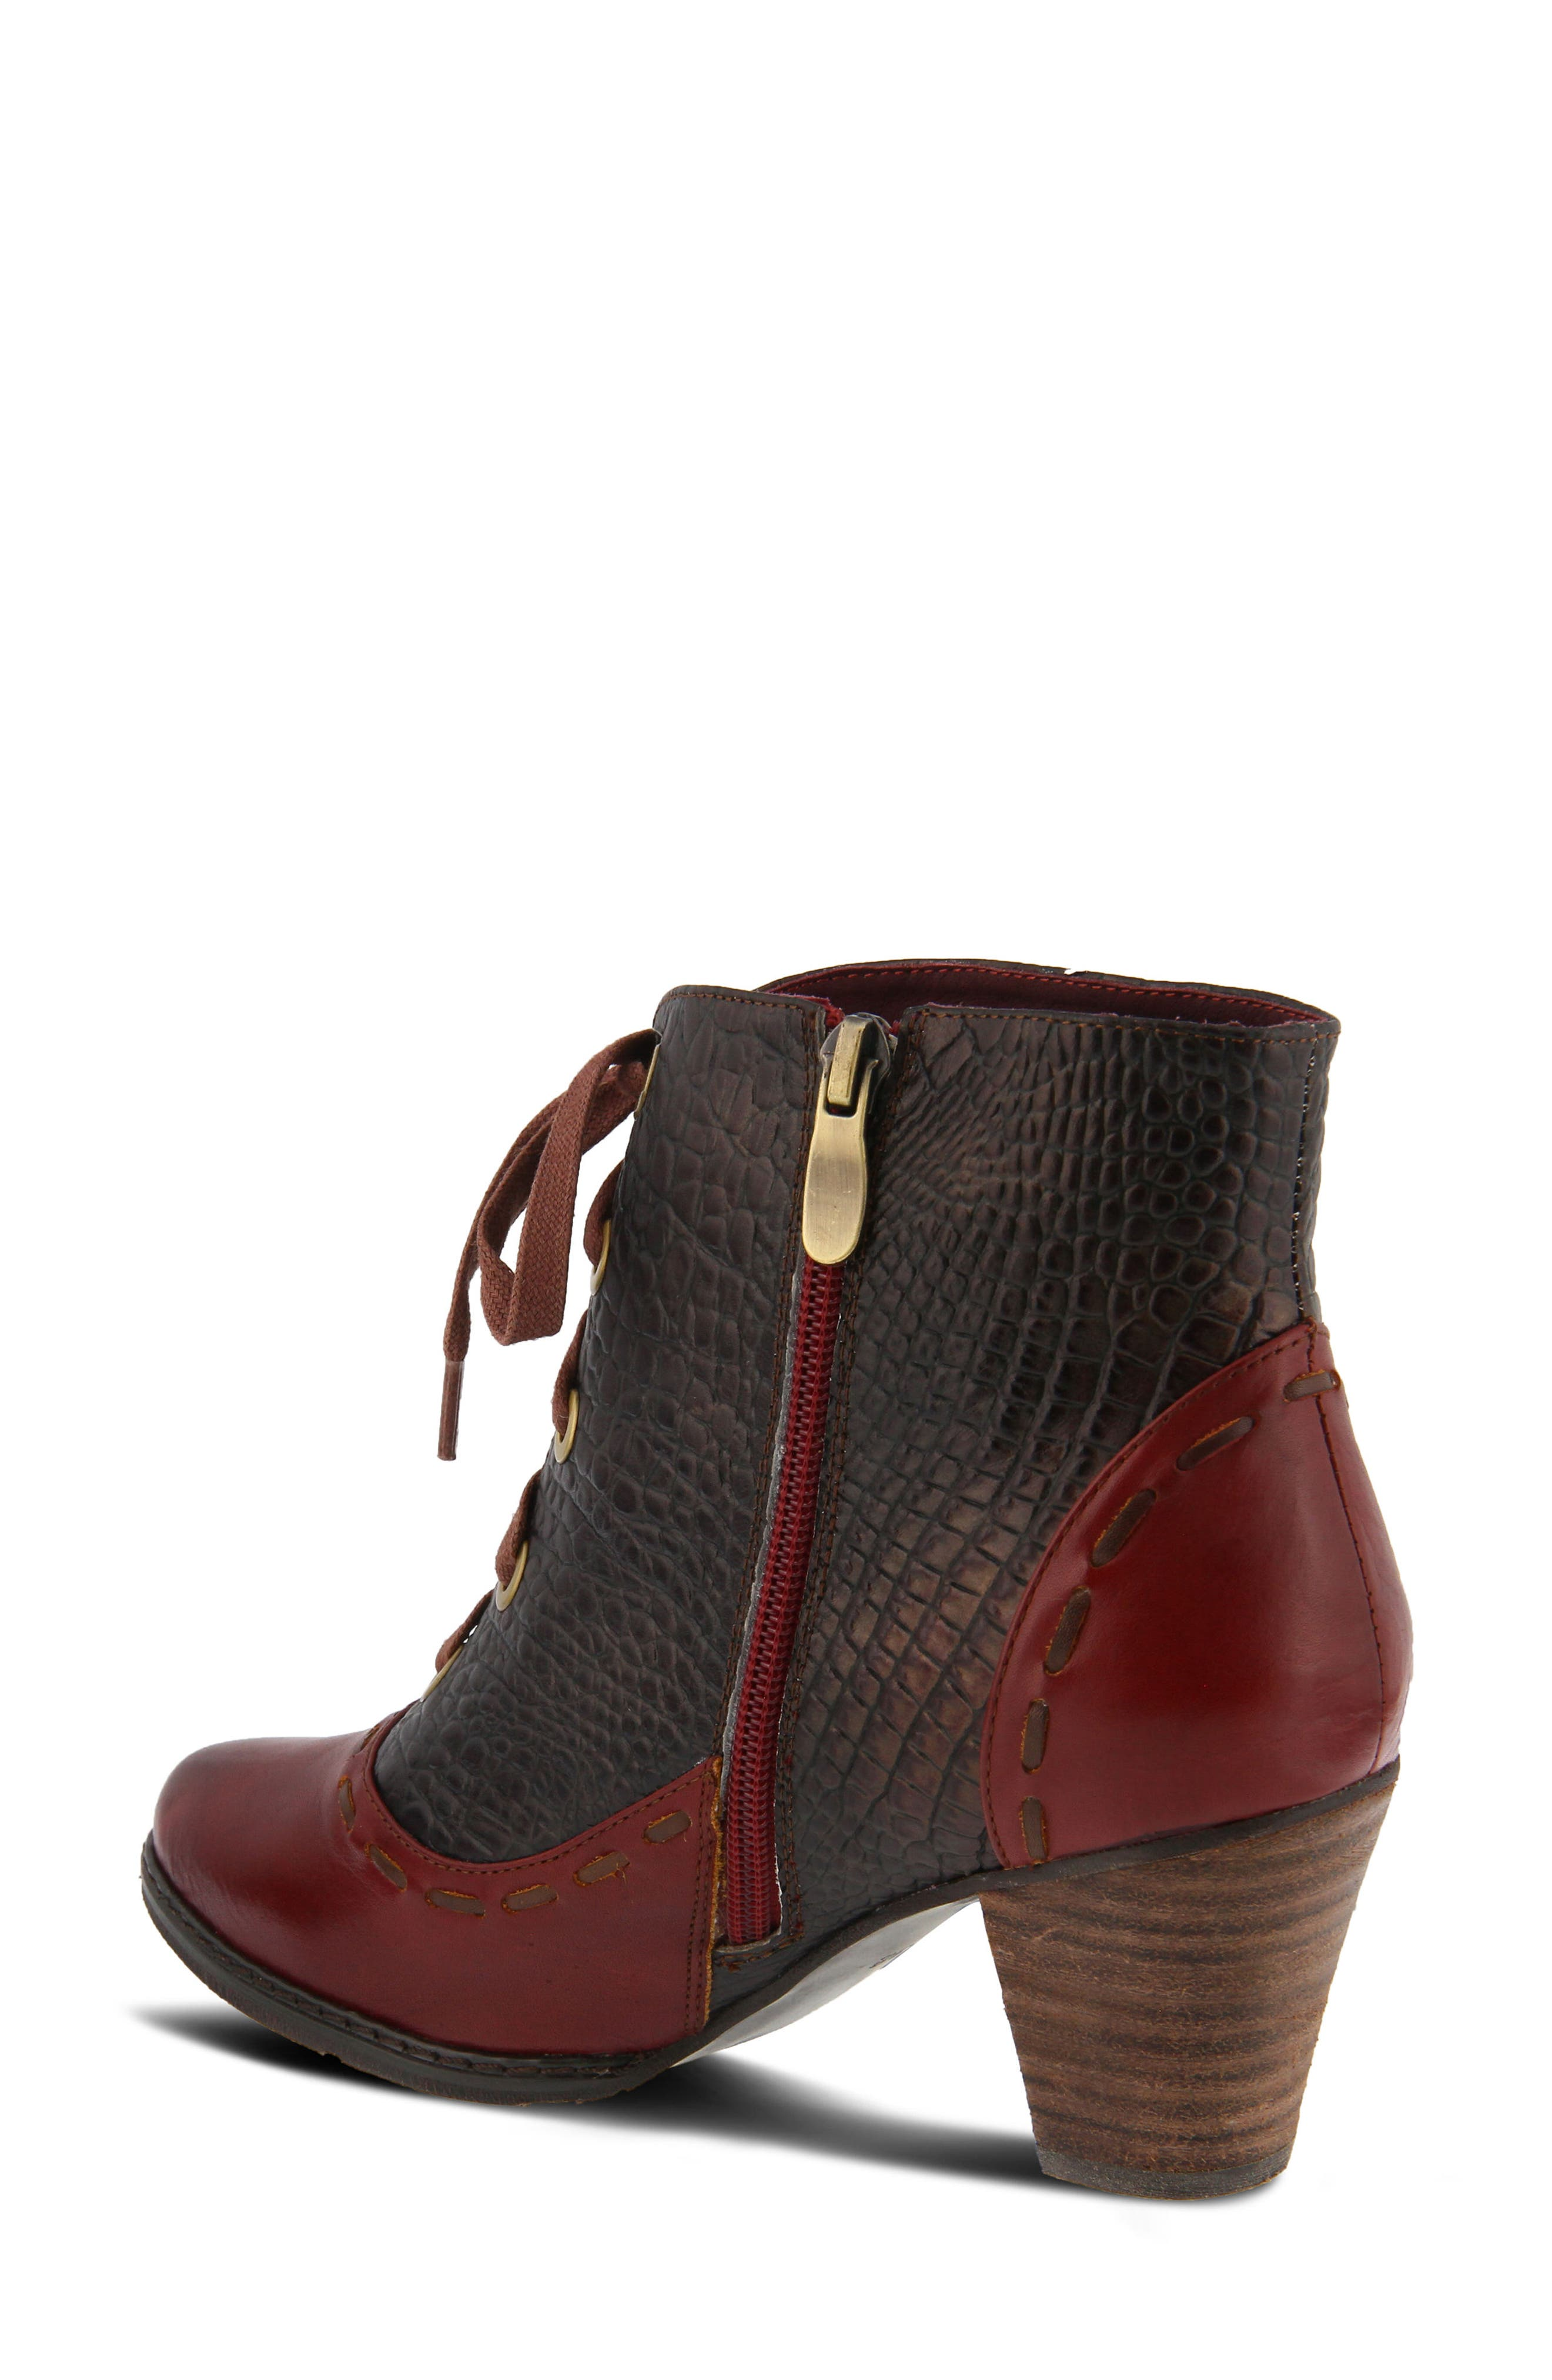 L'Artiste Sufi Bootie,                             Alternate thumbnail 2, color,                             BORDEAUX LEATHER